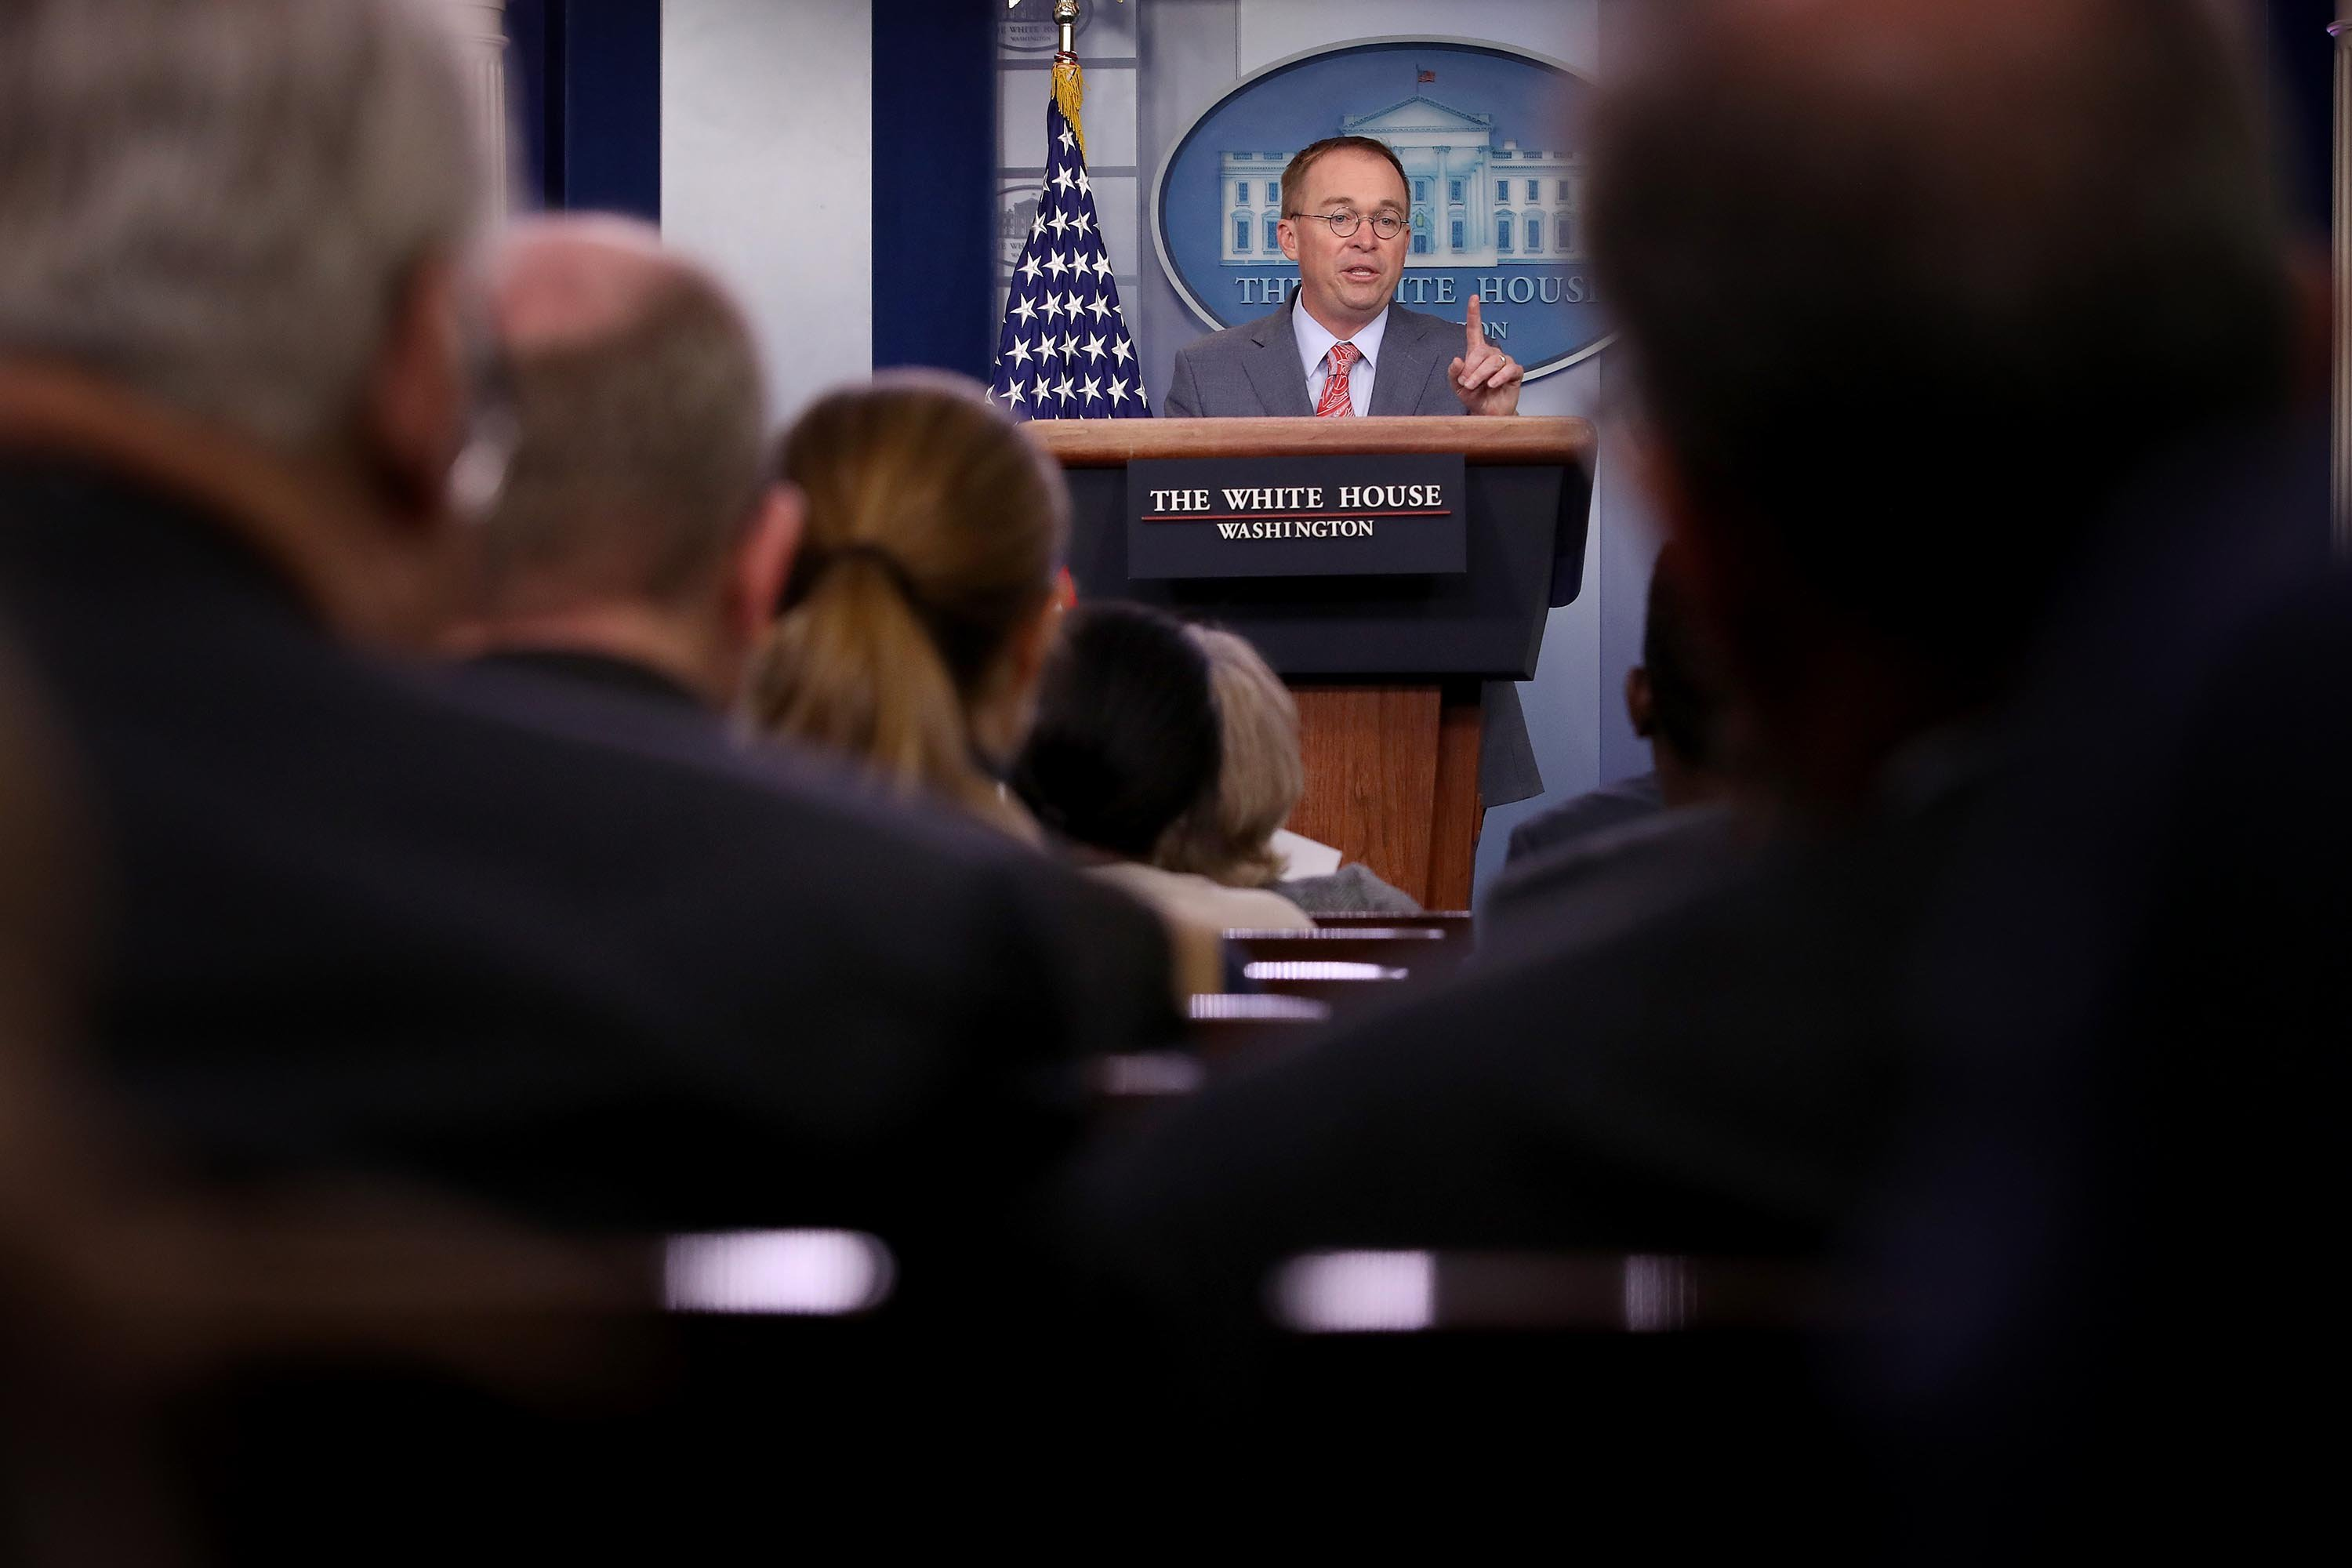 Trump unhappy with Mulvaney's press briefing in which he acknowledged quid pro quo, source says